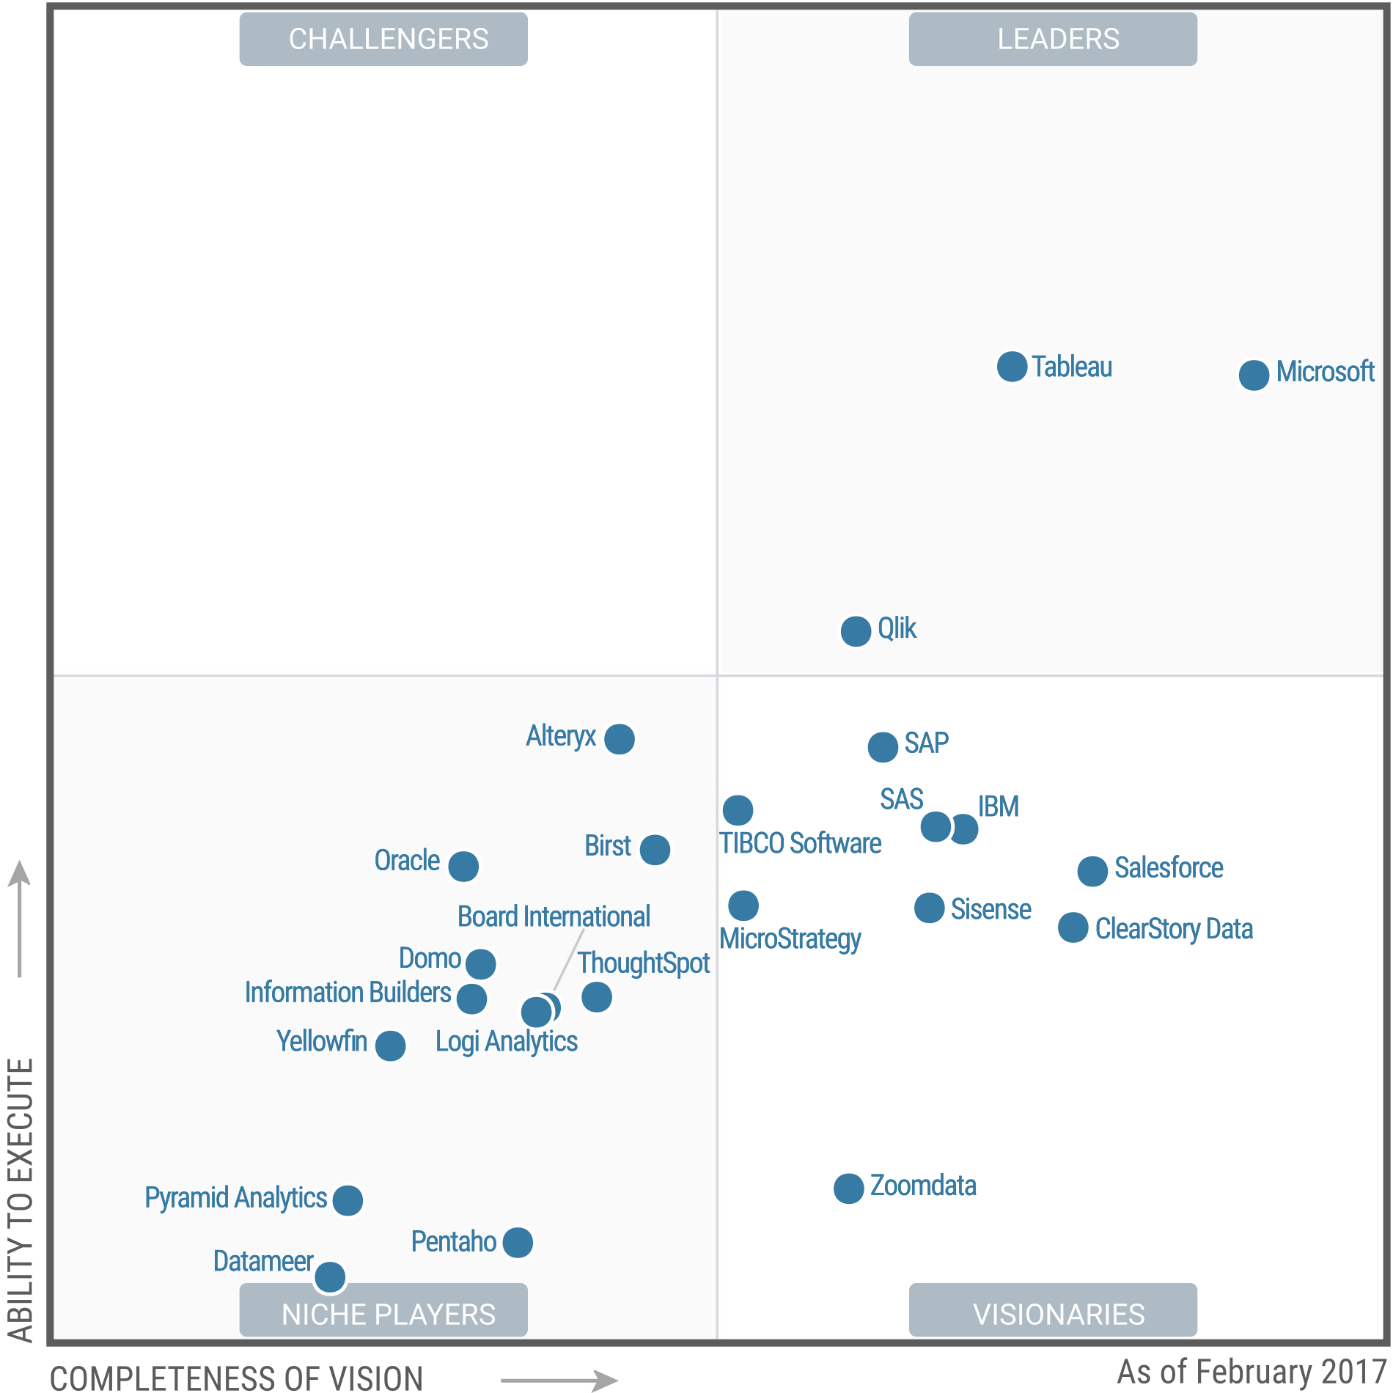 cognos architecture diagram 2006 chevy cobalt wiring sisense recognized as a visionary in gartner's magic quadrant report for business intelligence ...